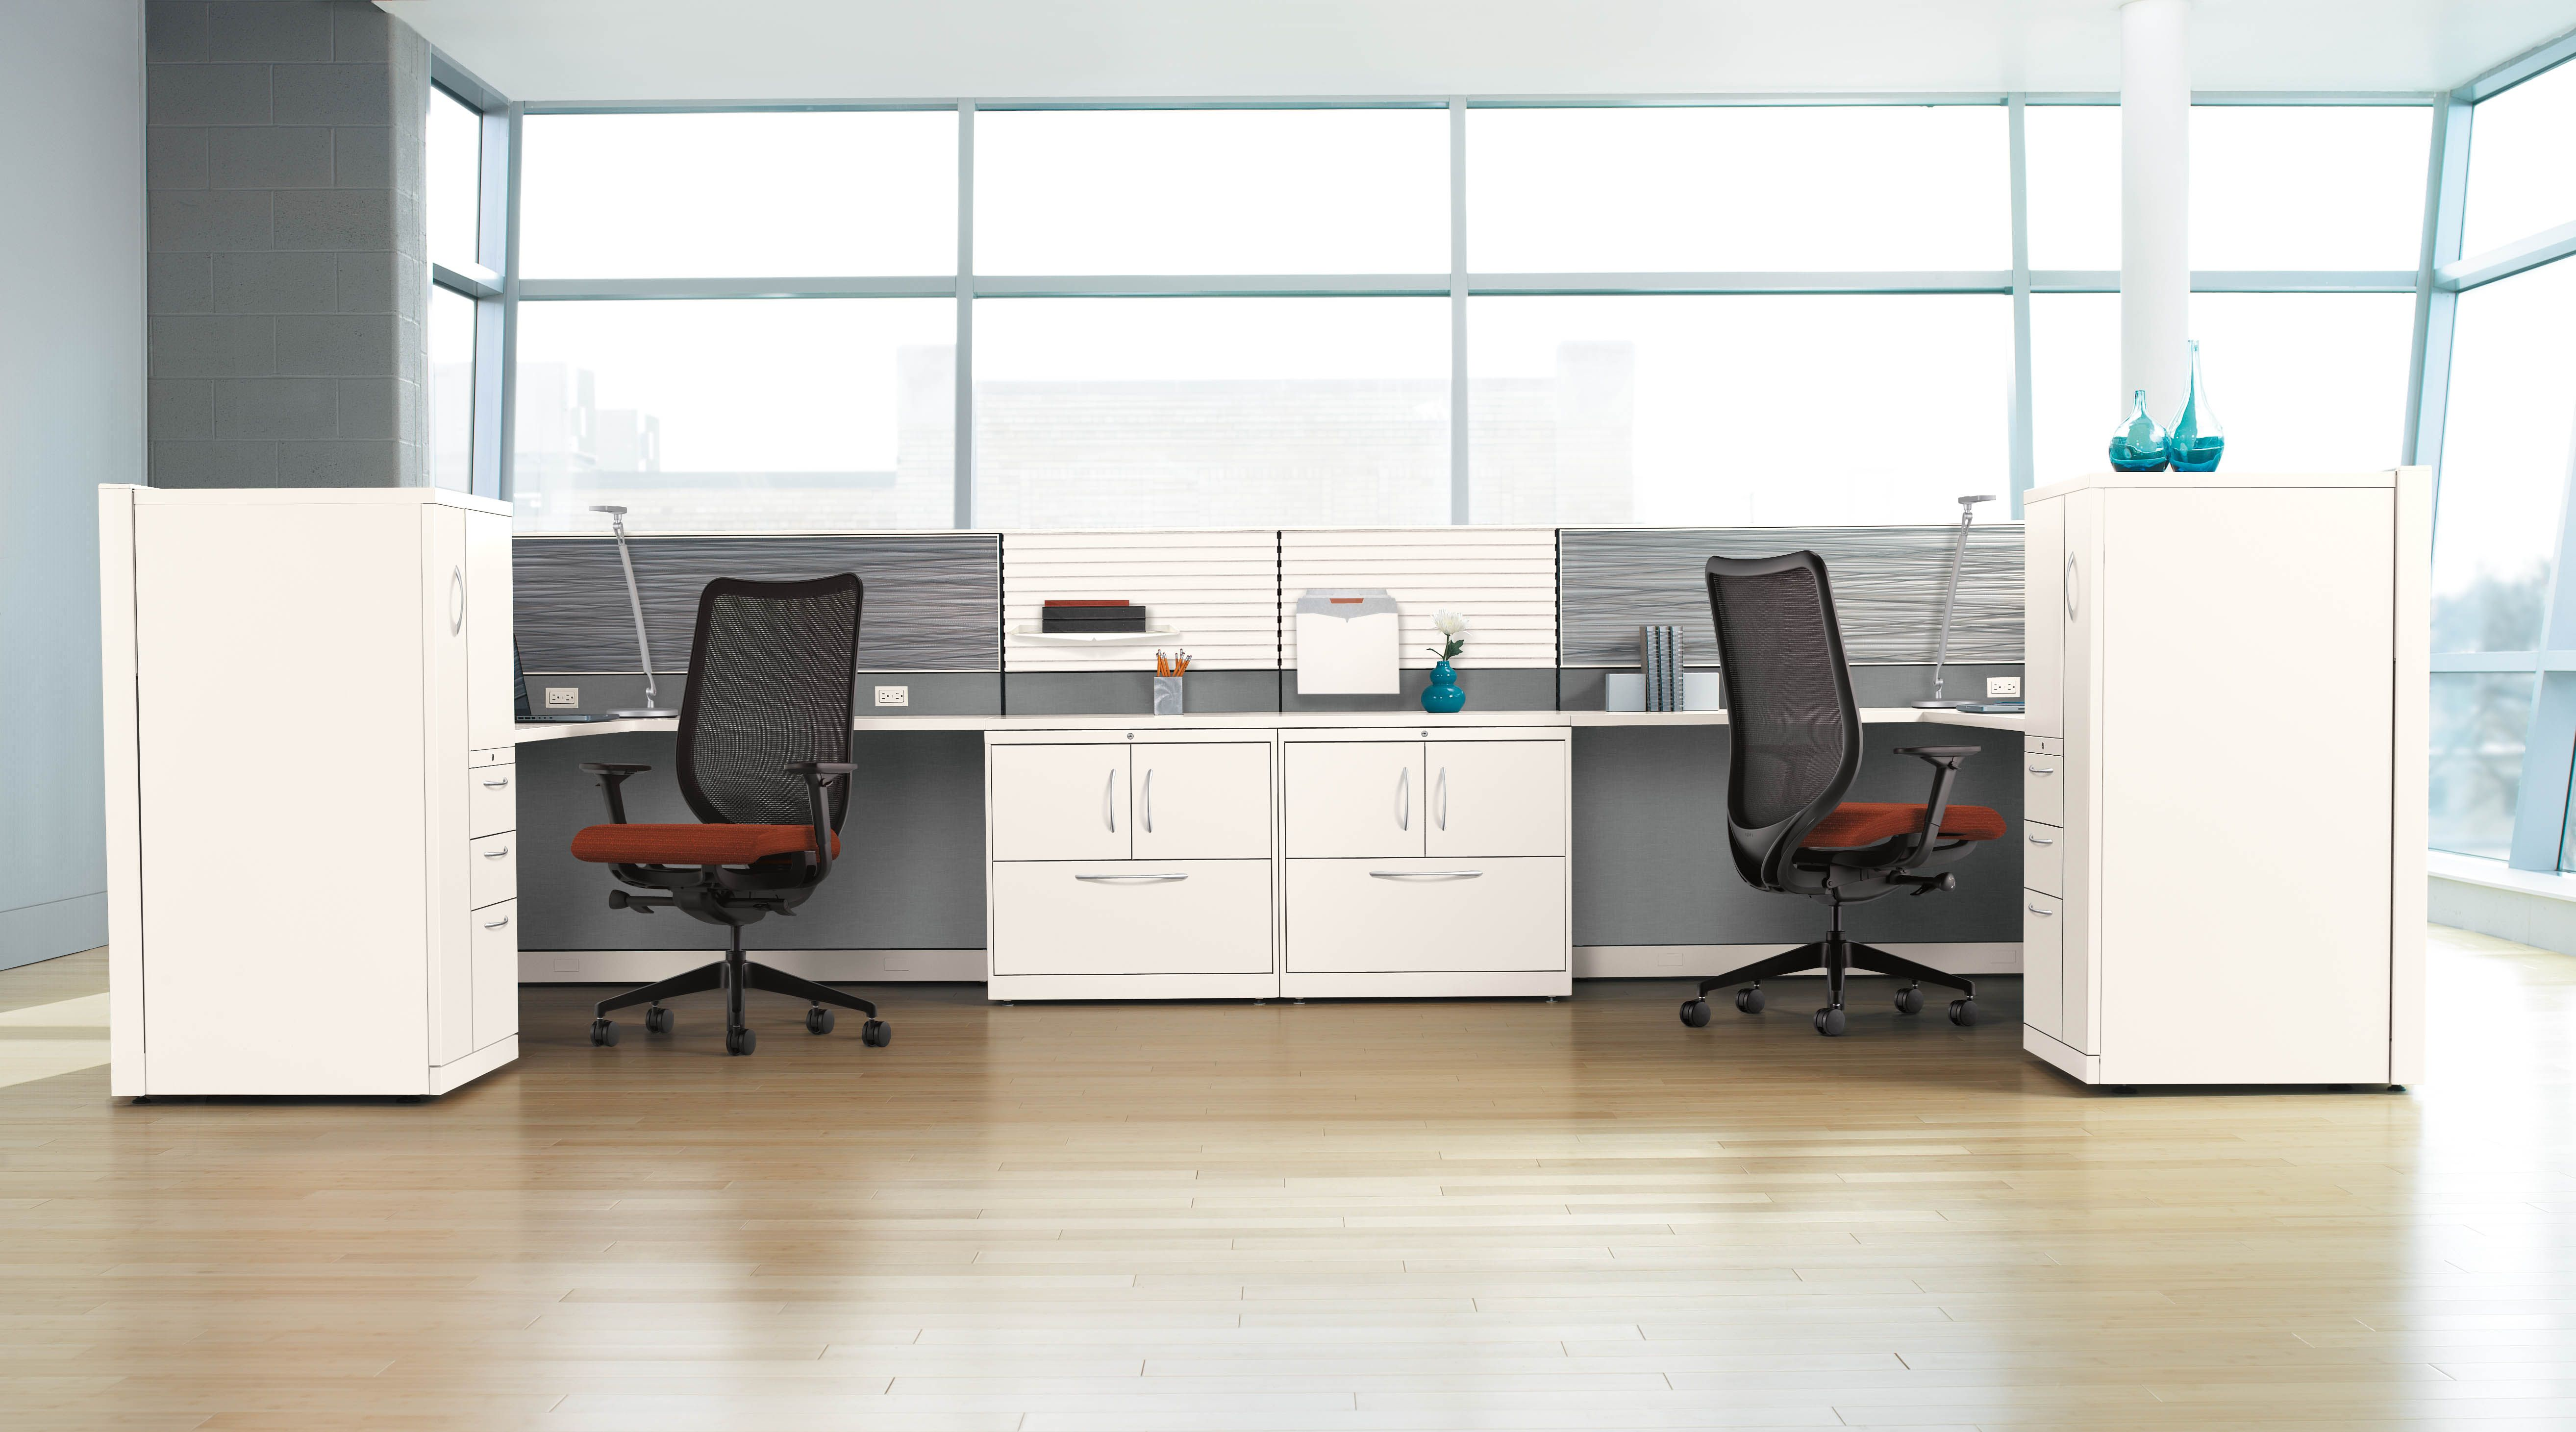 Kimball Xsite frameless glass with brackets Stations